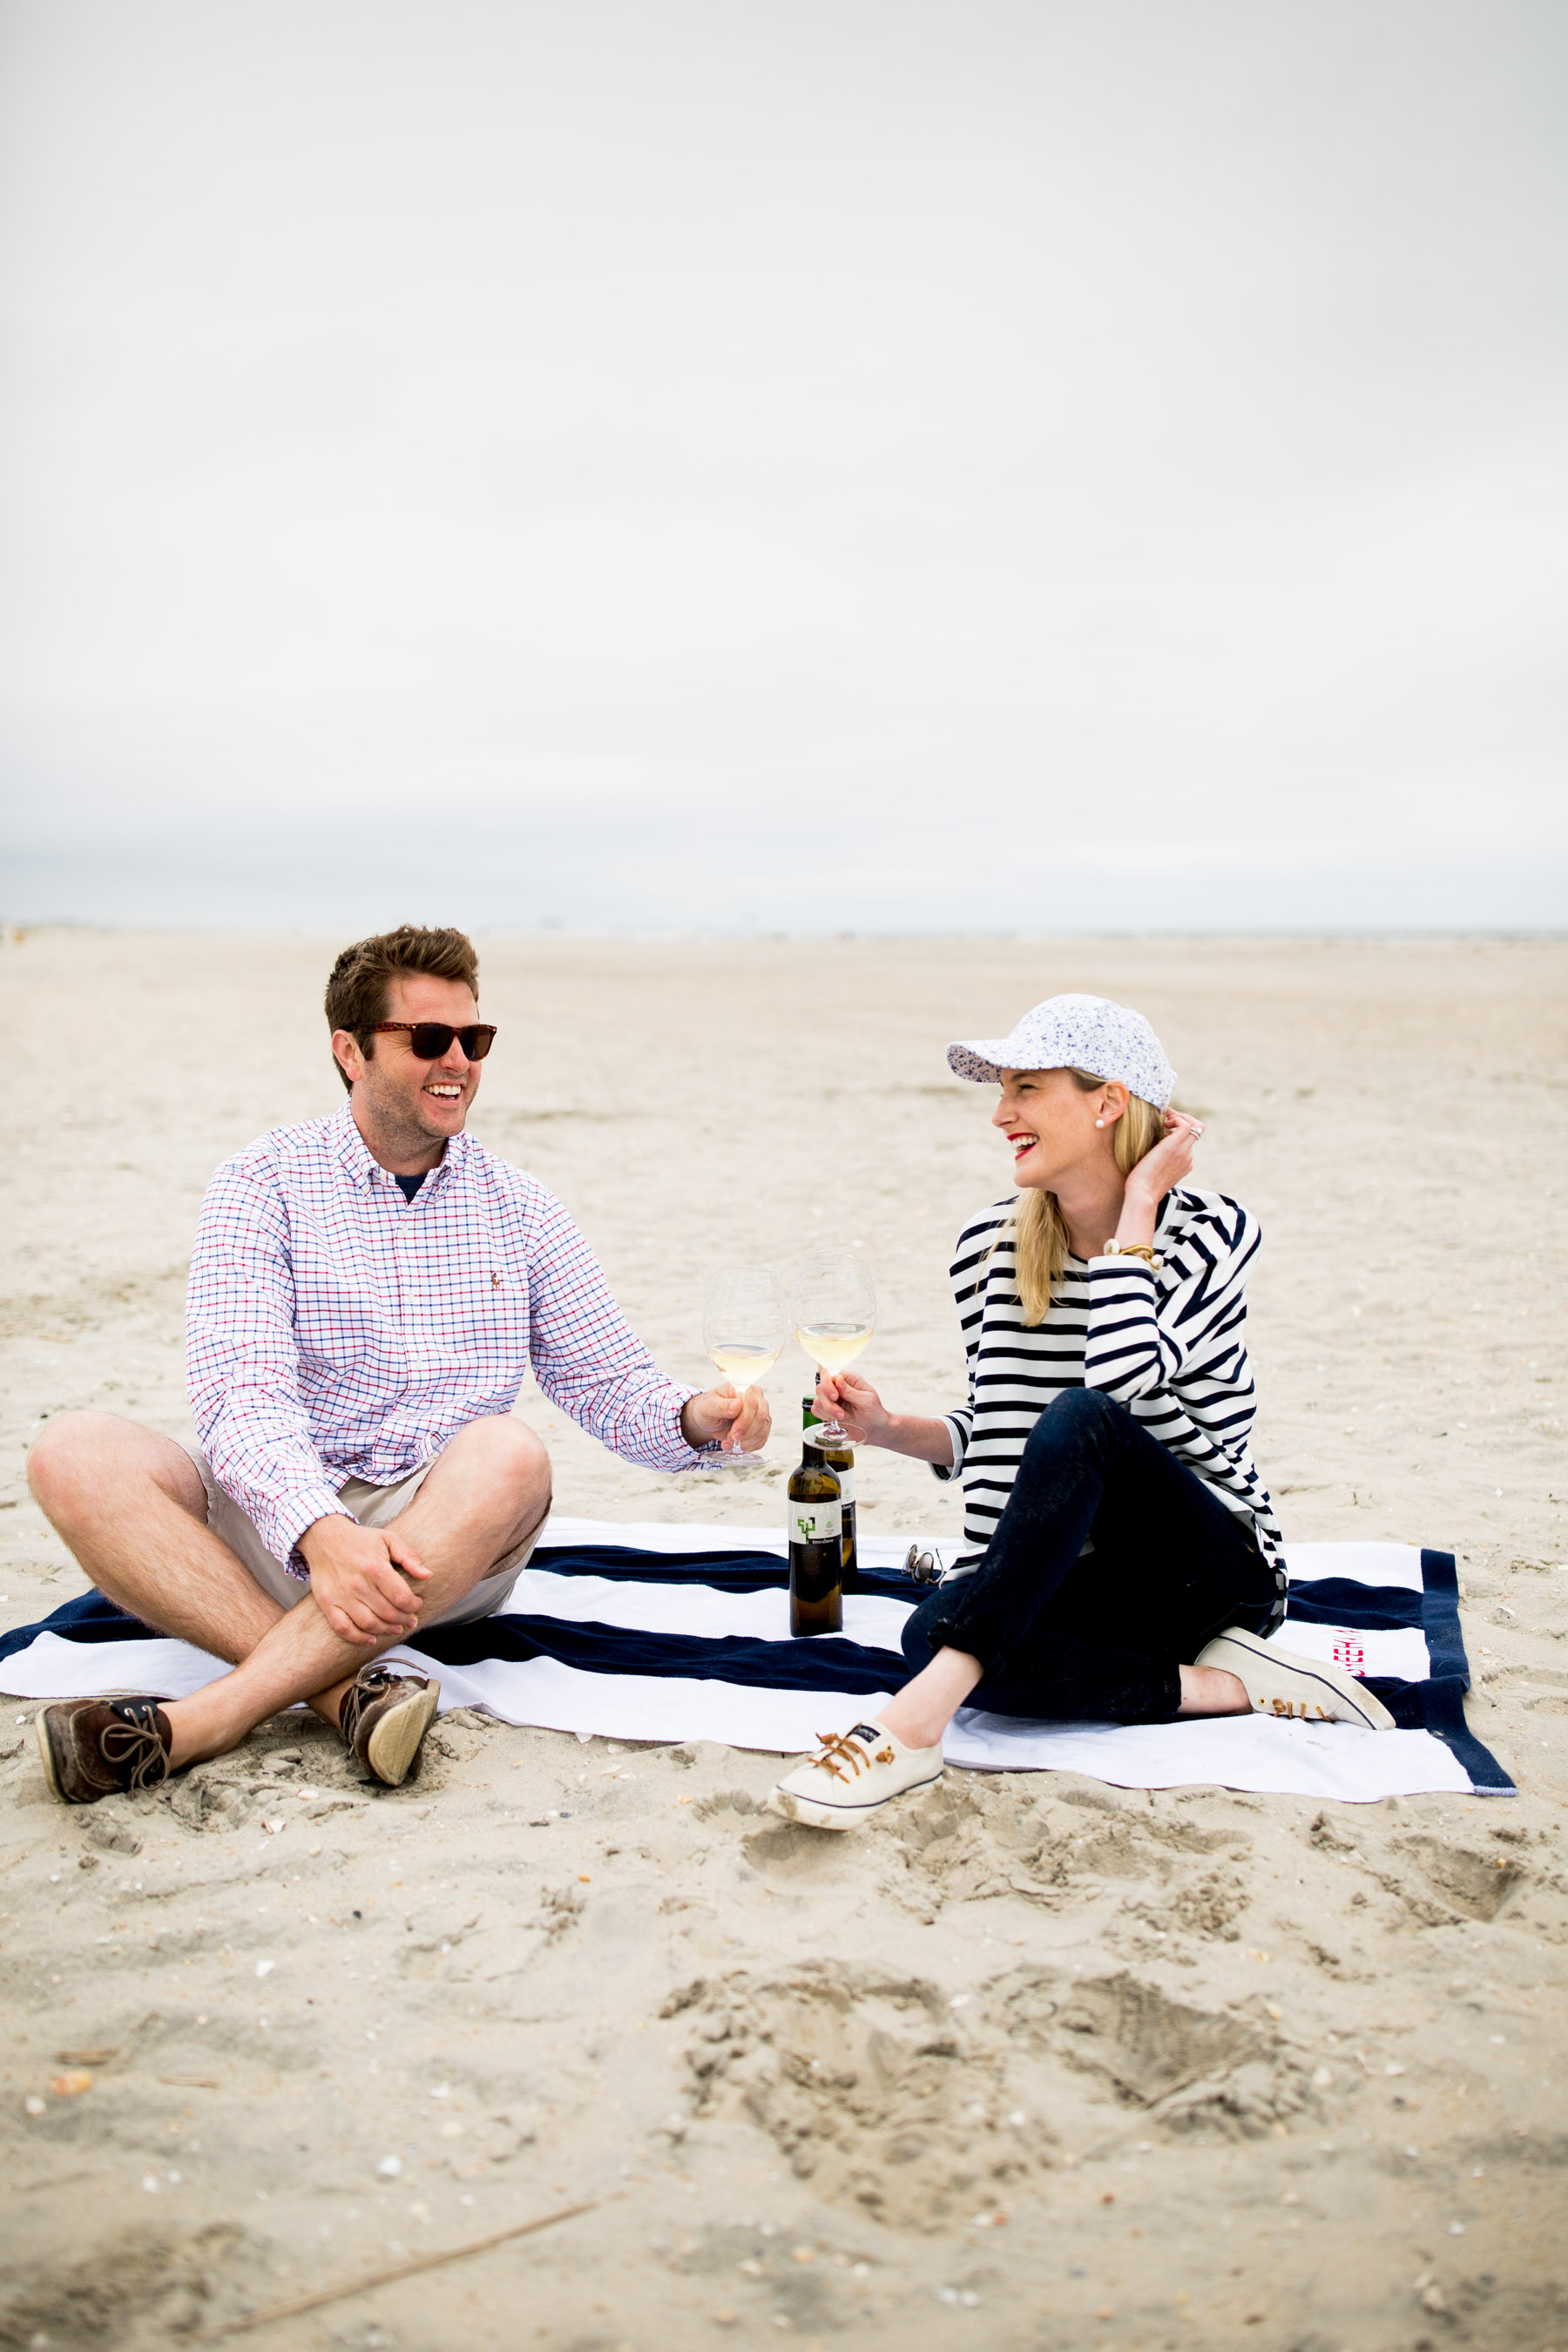 ocean city dating Find 1 listings related to singles clubs in ocean city on ypcom see reviews, photos, directions, phone numbers and more for singles clubs locations in ocean city, md.